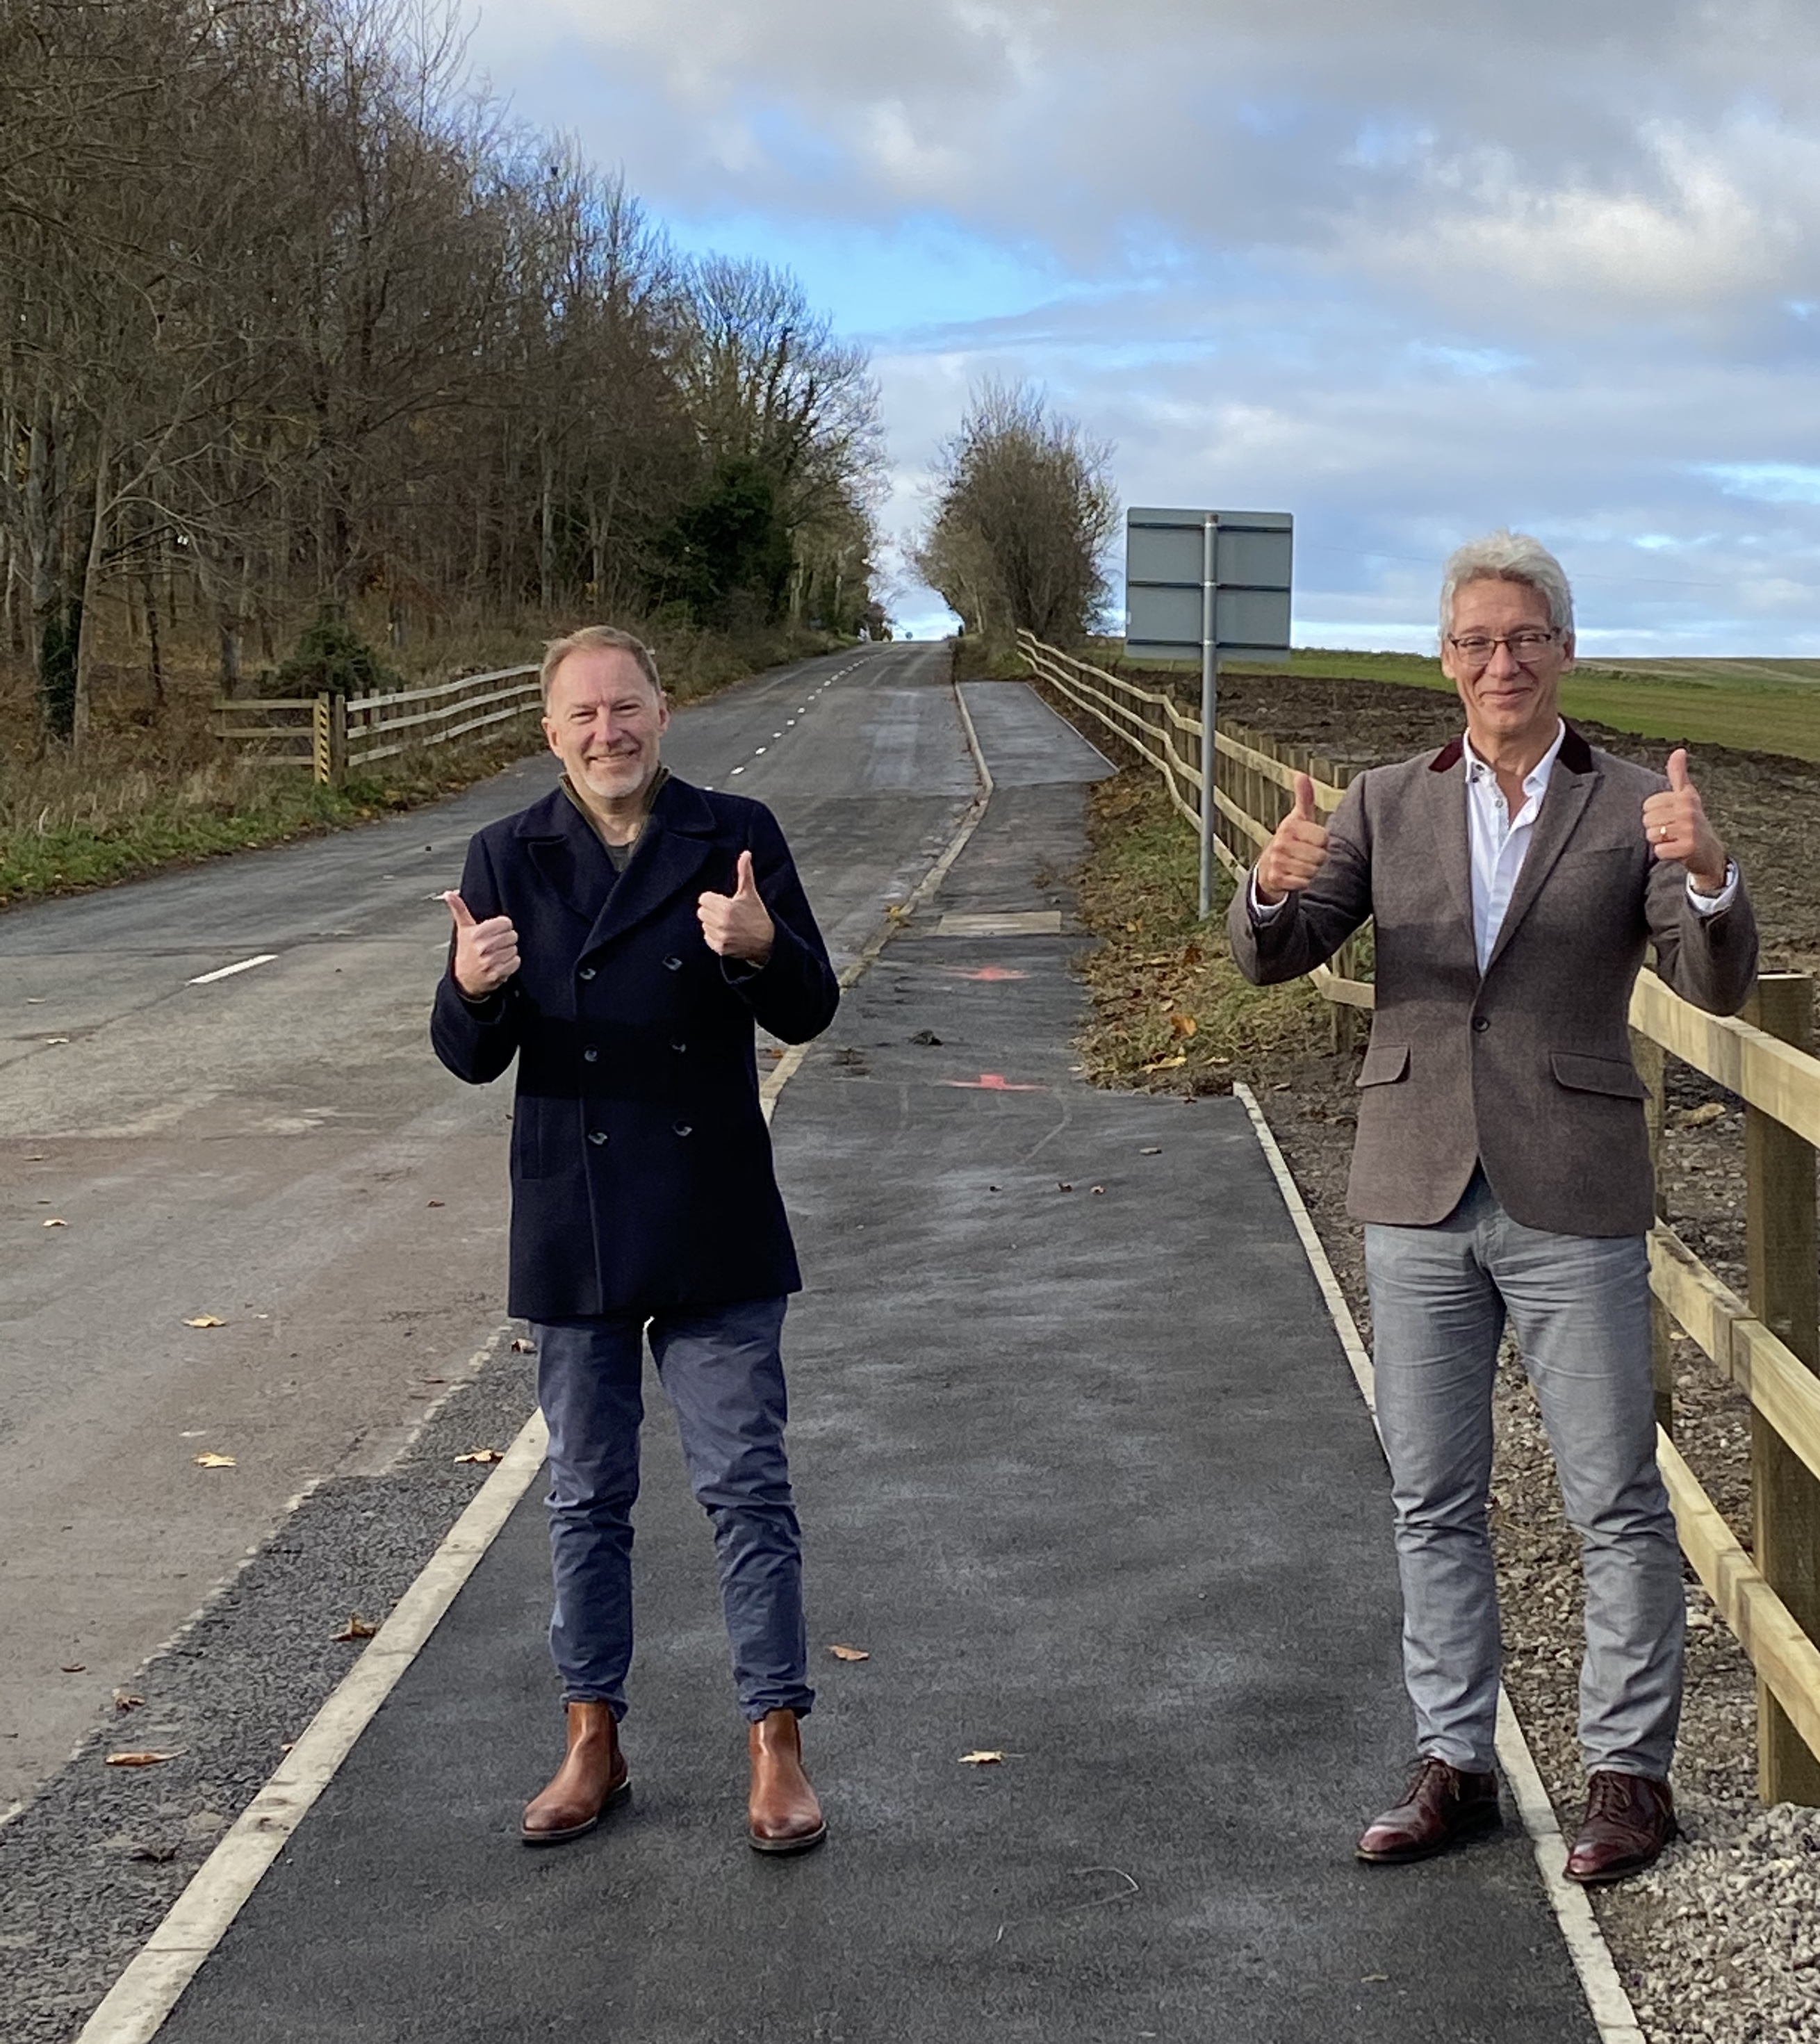 Old A40 gets full reopening